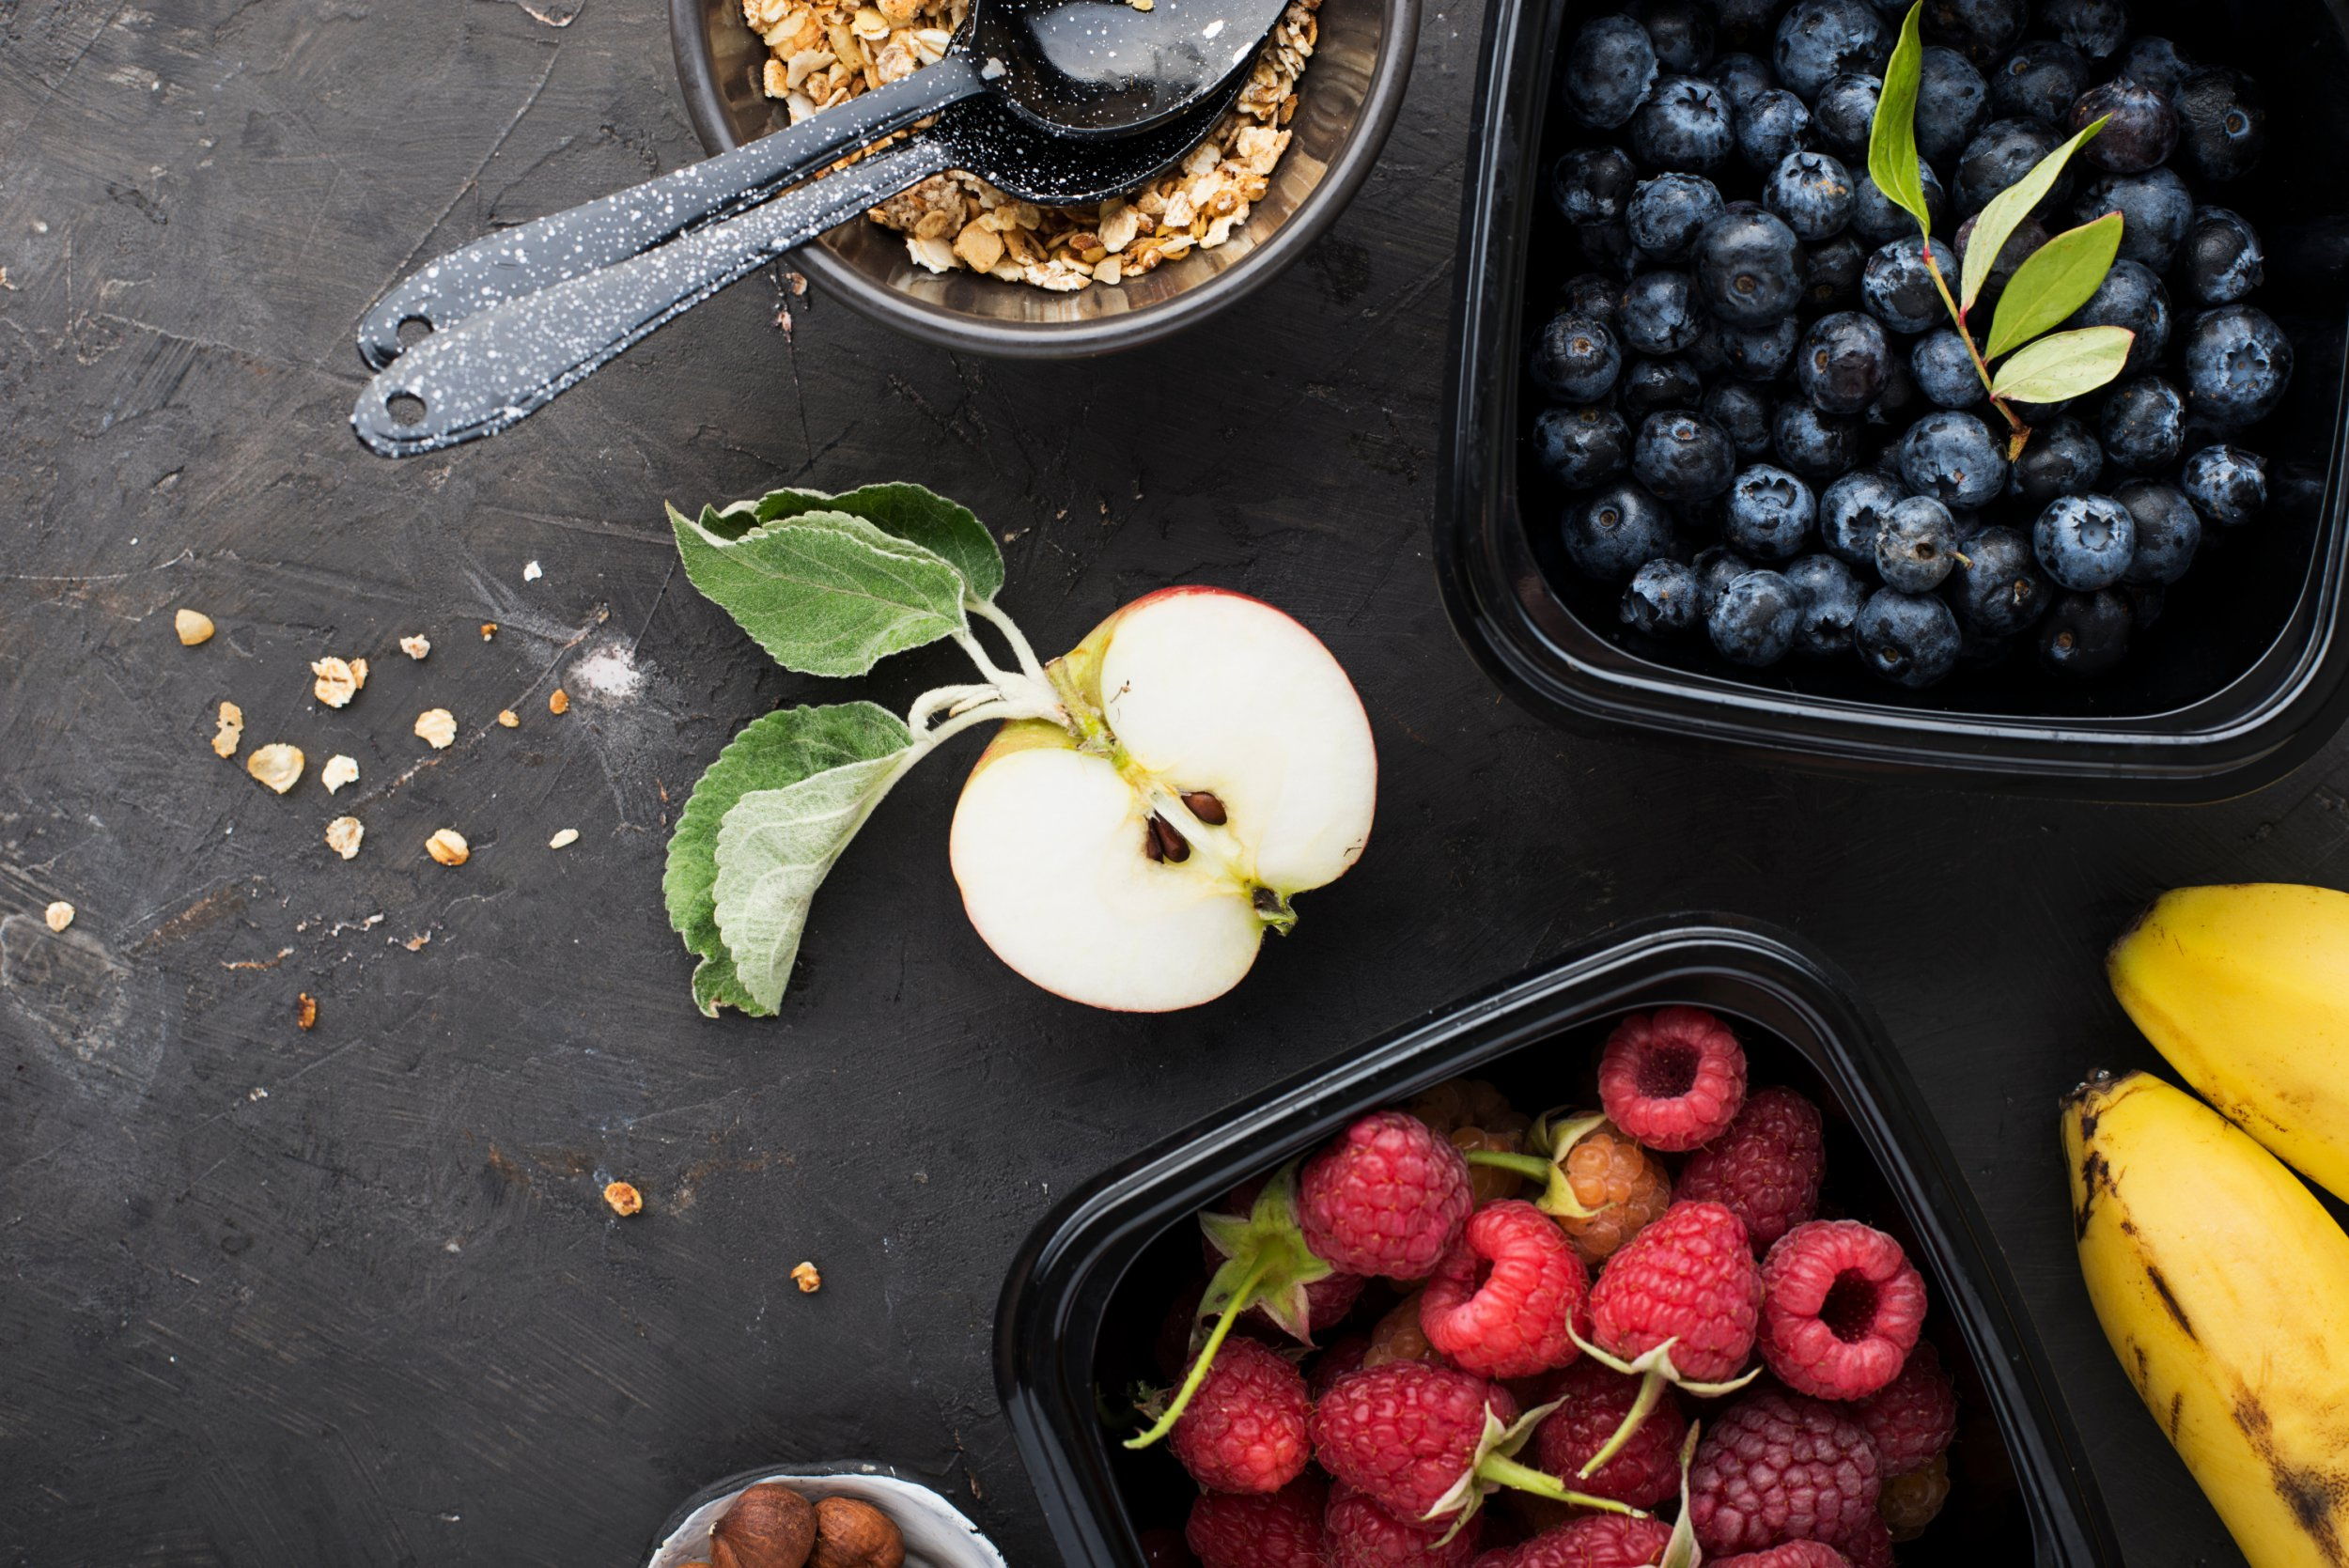 Black plastic containers take-away for a healthy snack food with raspberries, blueberries. Ingredients of healthy breakfast: granola, oat flakes, berries, nuts, apples, bananas. Top View; Shutterstock ID 1162363981; Purchase Order: -